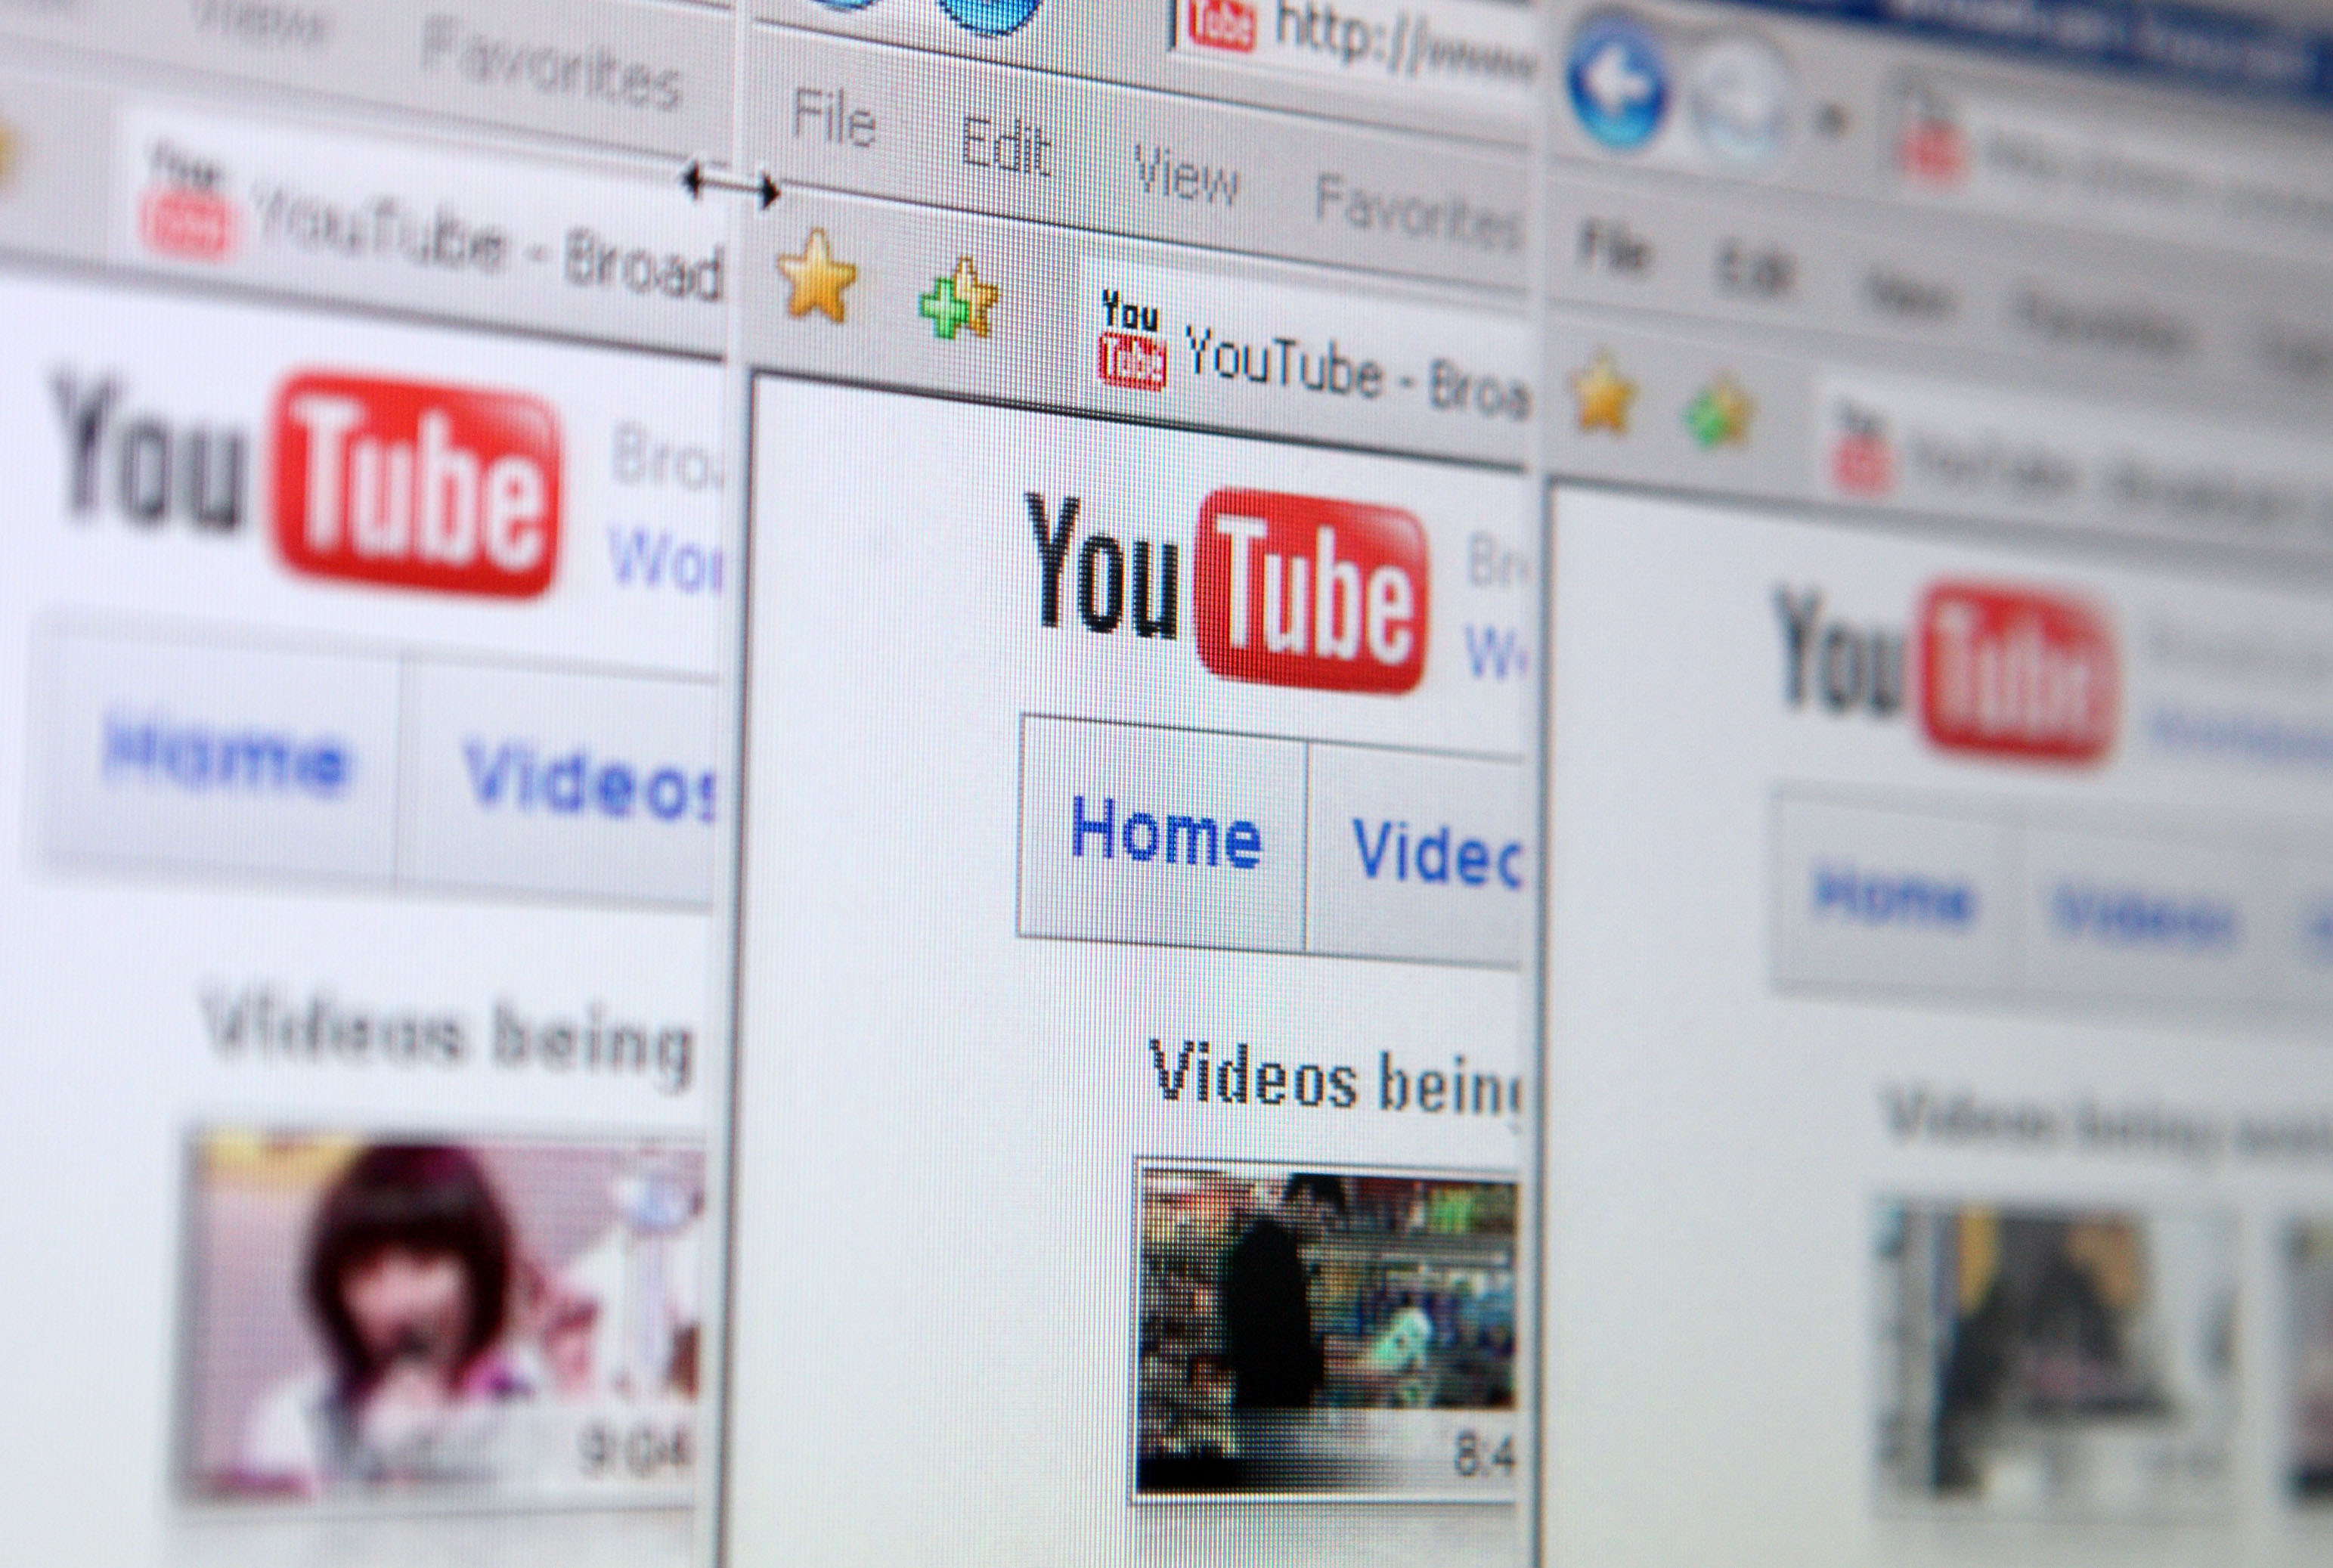 Google Inc.'s YouTube video-sharing Web site is displayed on